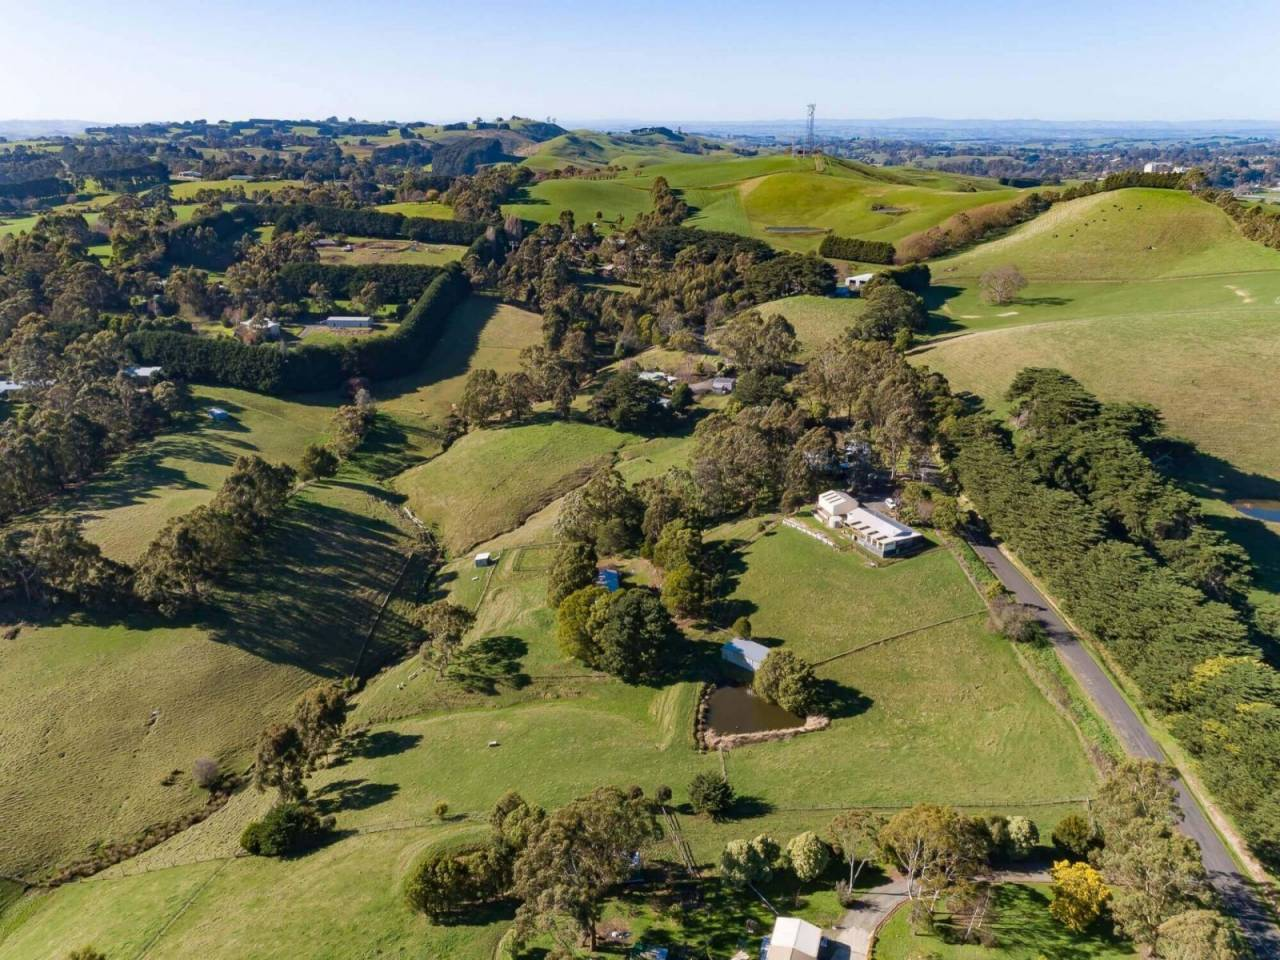 Under Contract Fabulous Lifestyle Property Horse Farm With 3br Home On Just Under 6 Acres 5 Minutes From Korumburra Farm Buy